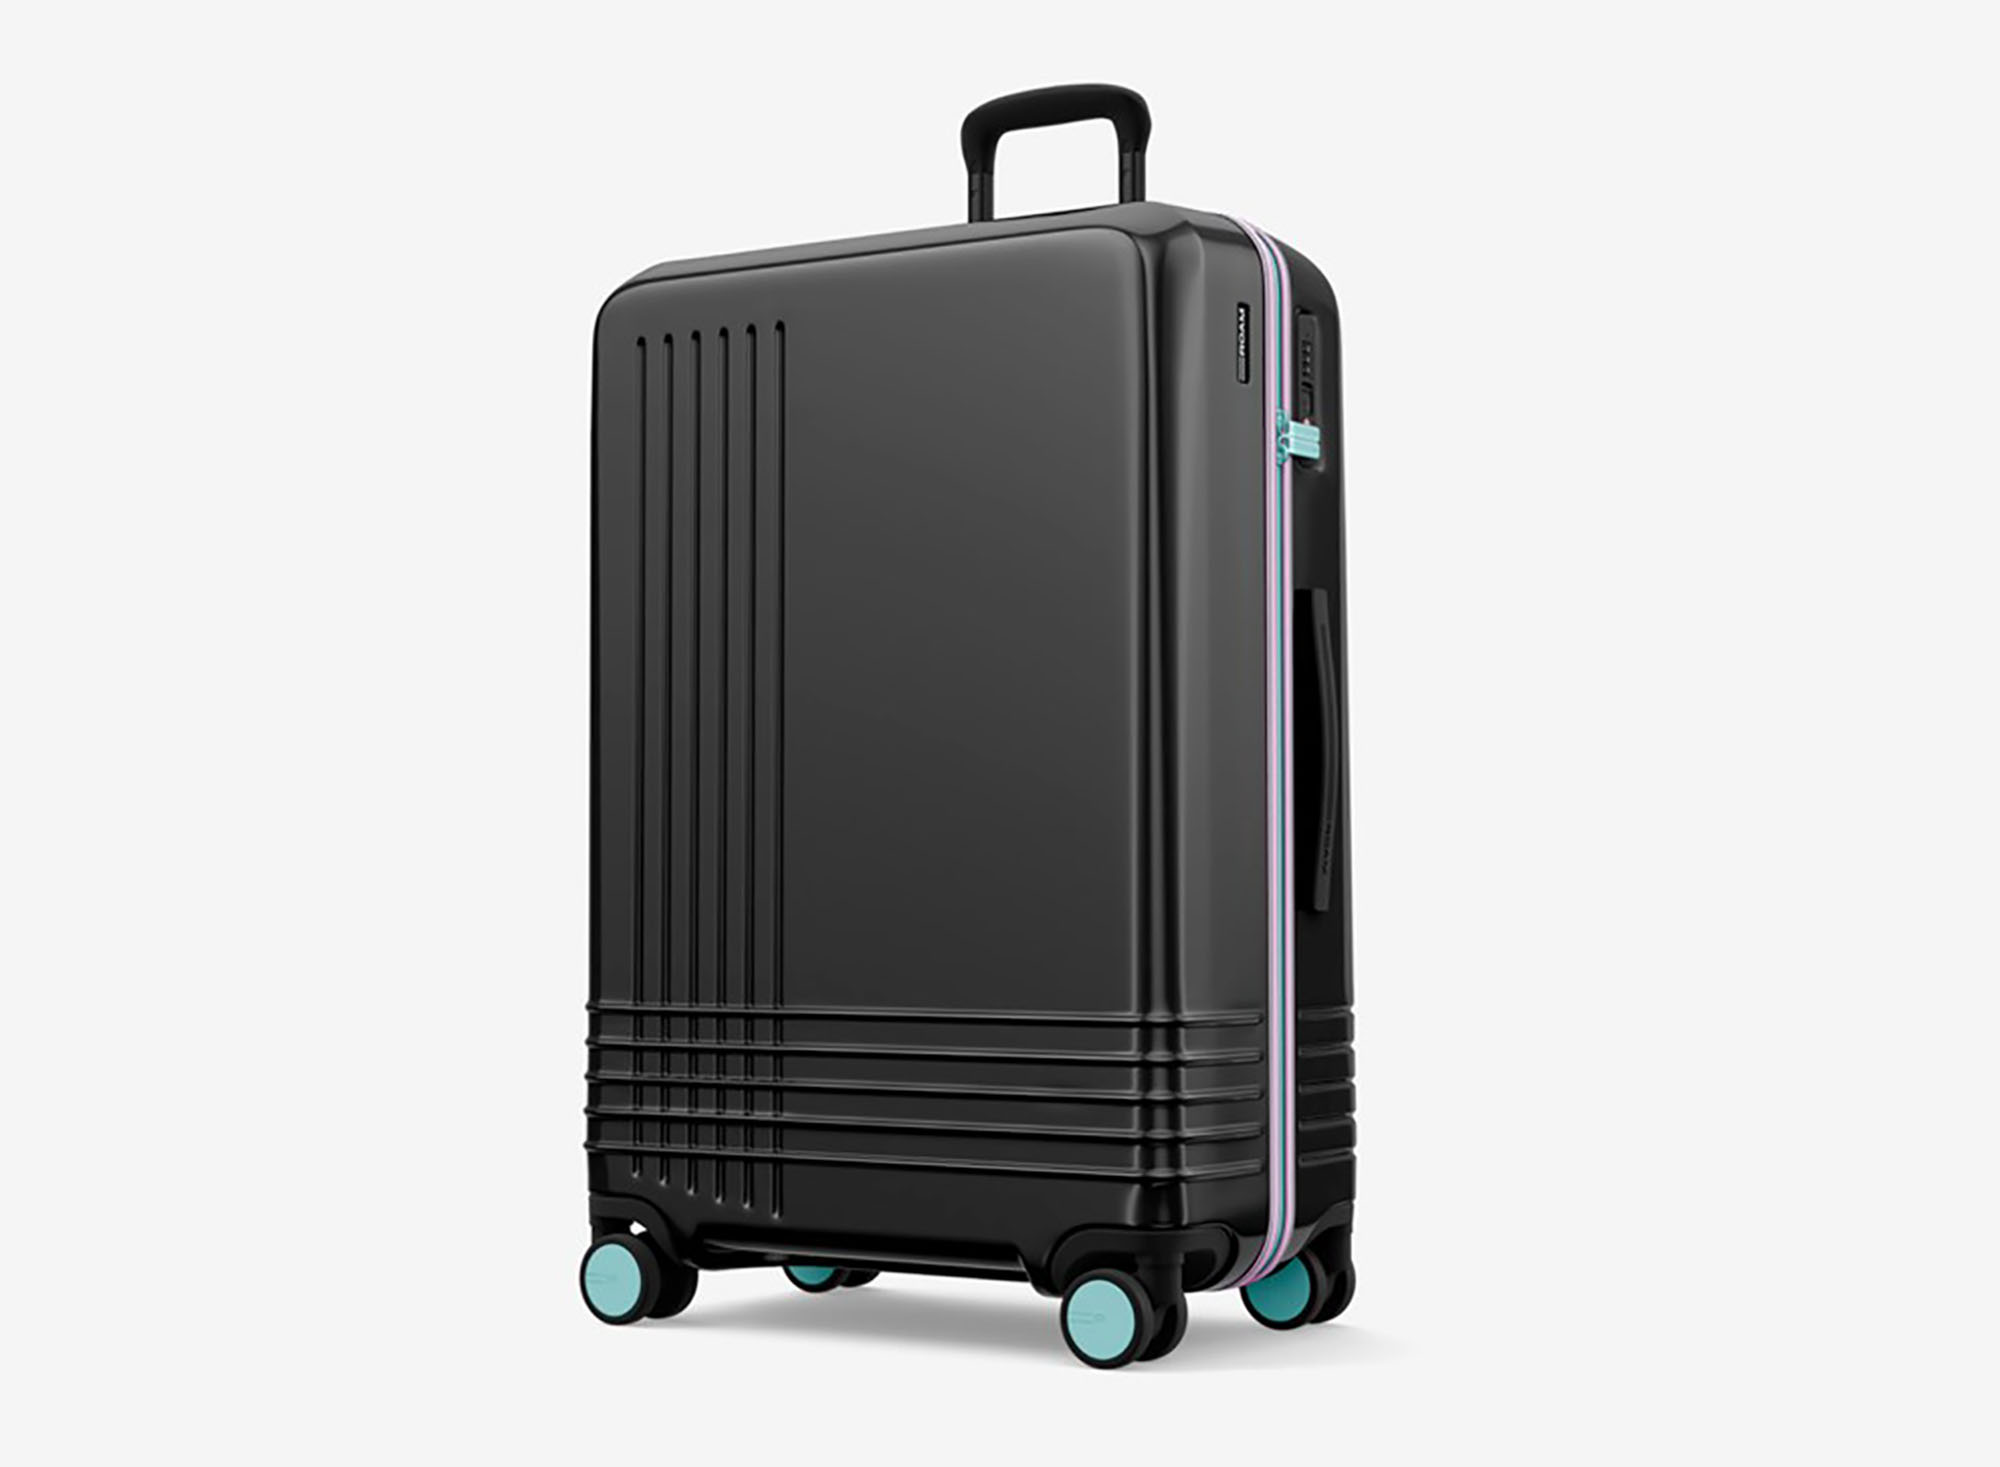 Roam Luggage The Globetrotter